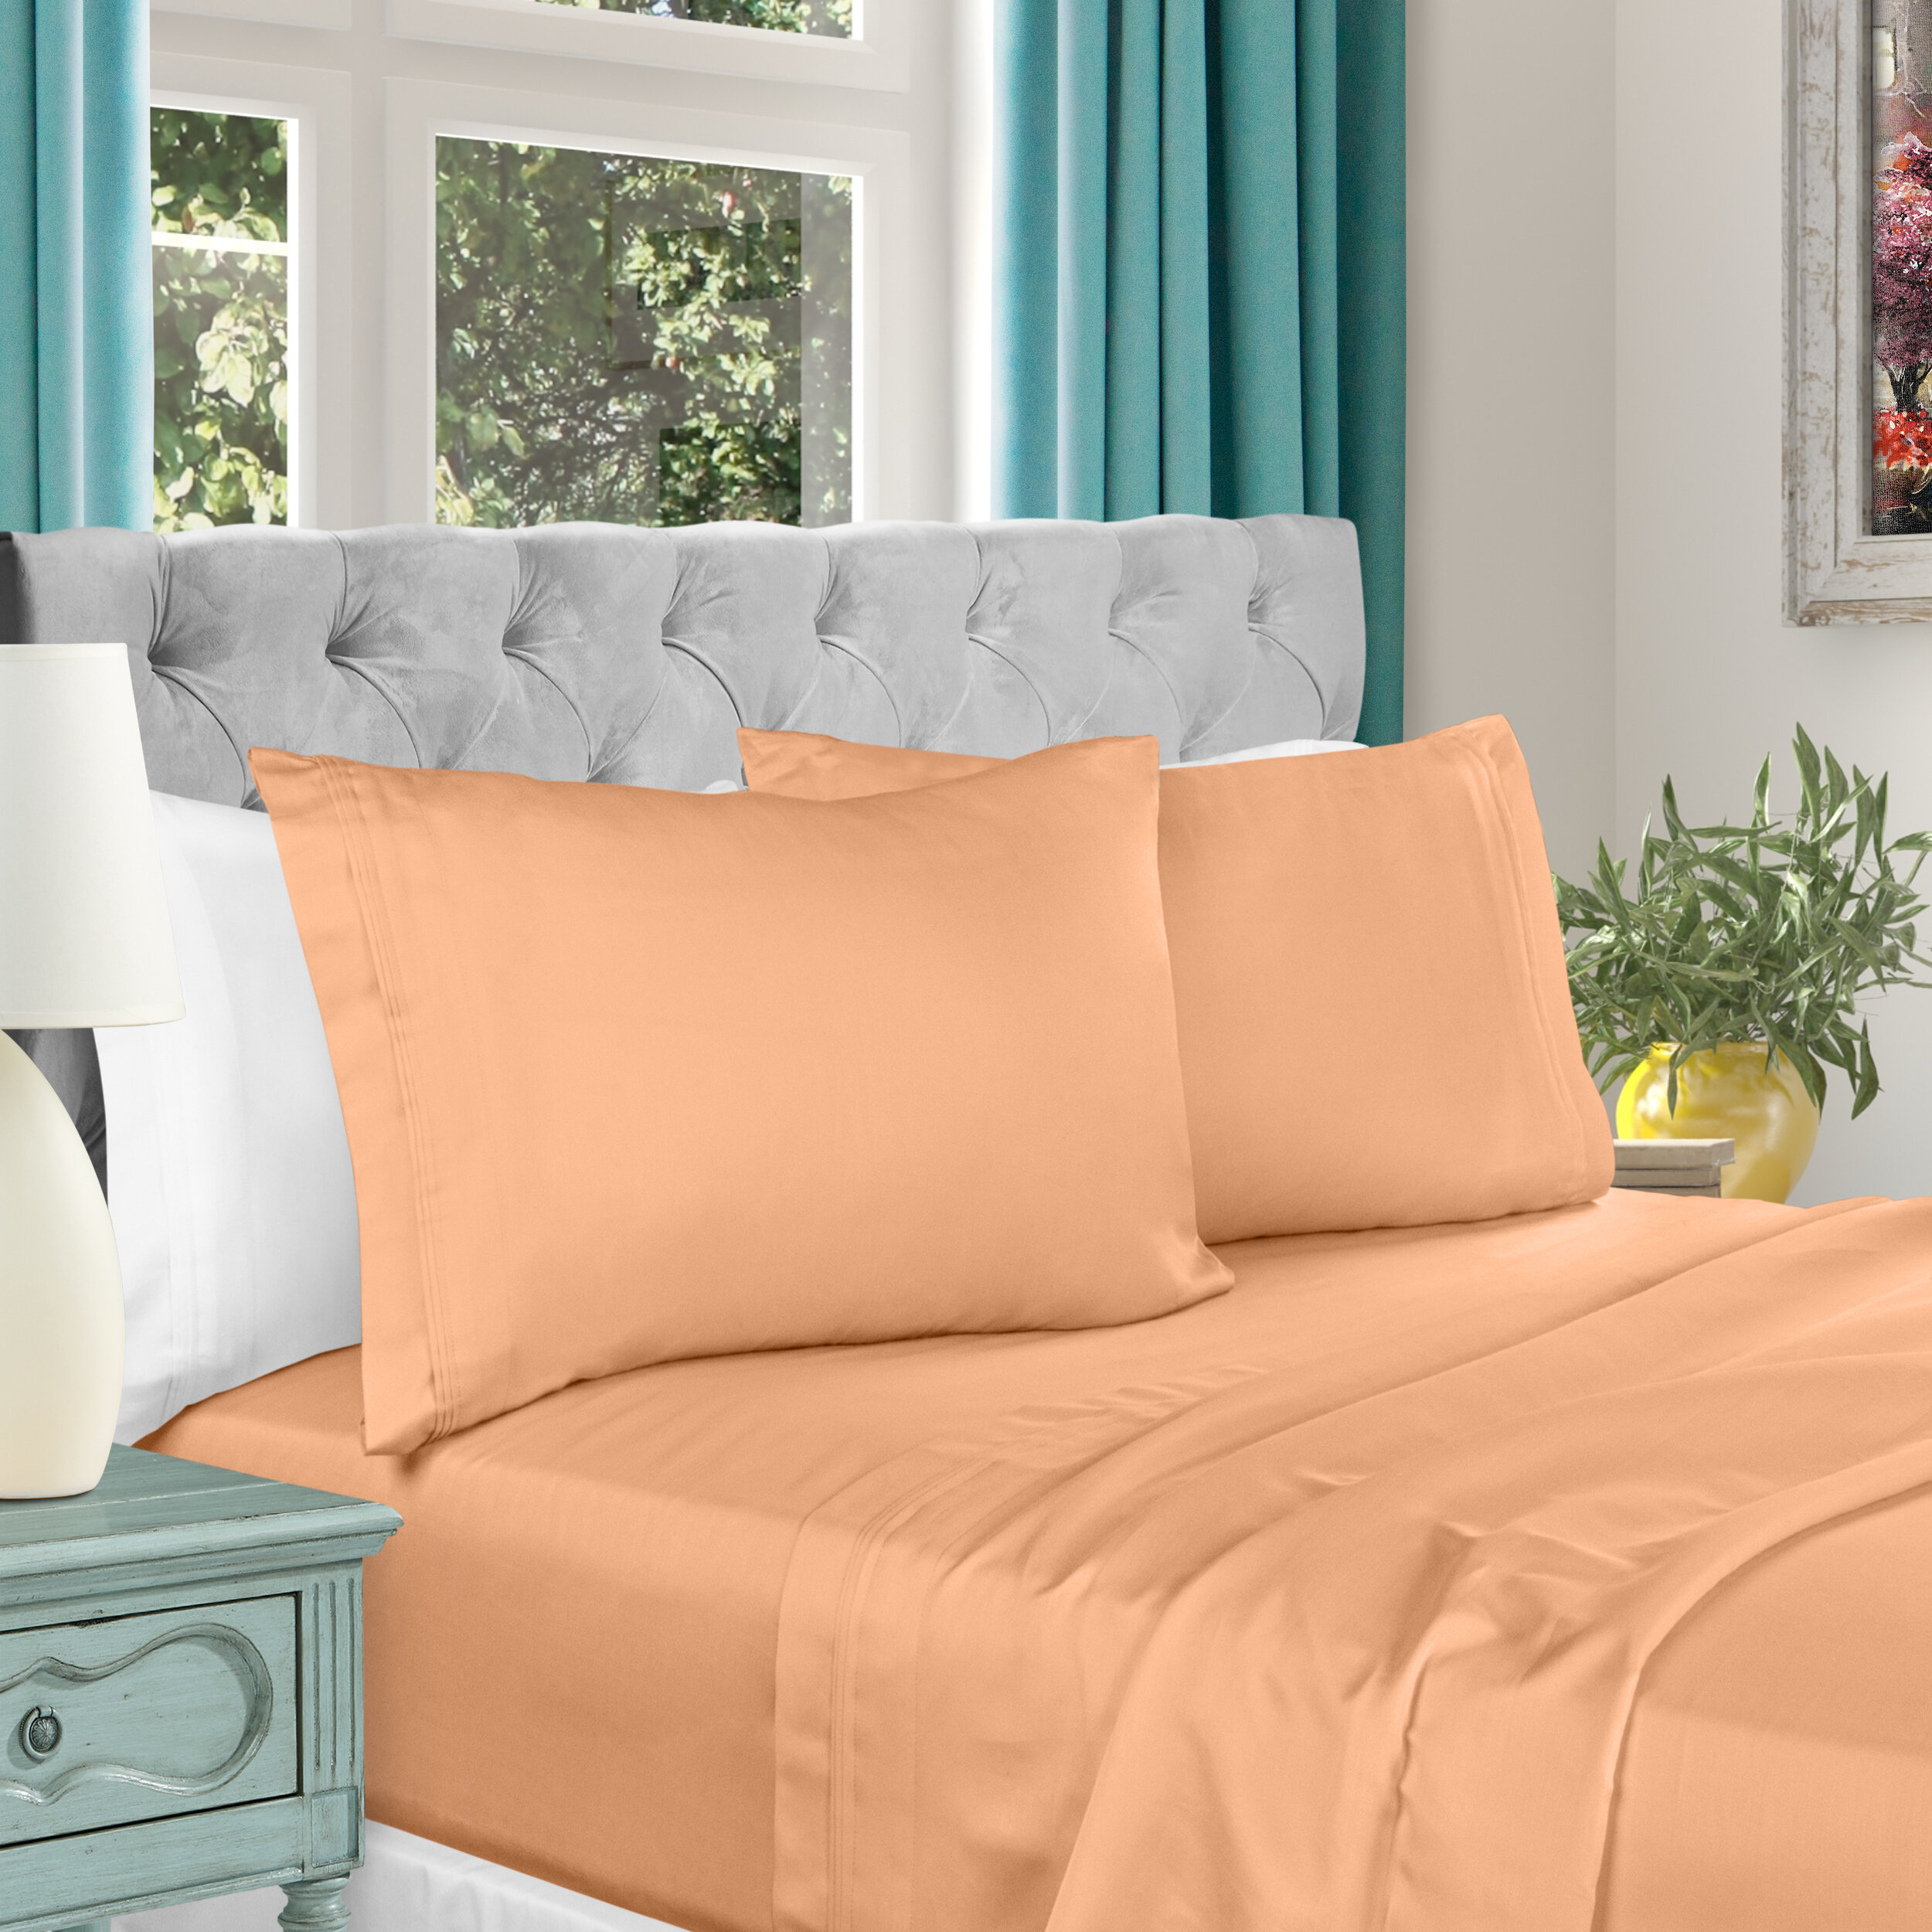 Queen White Sheets Pillowcases You Ll Love In 2021 Wayfair